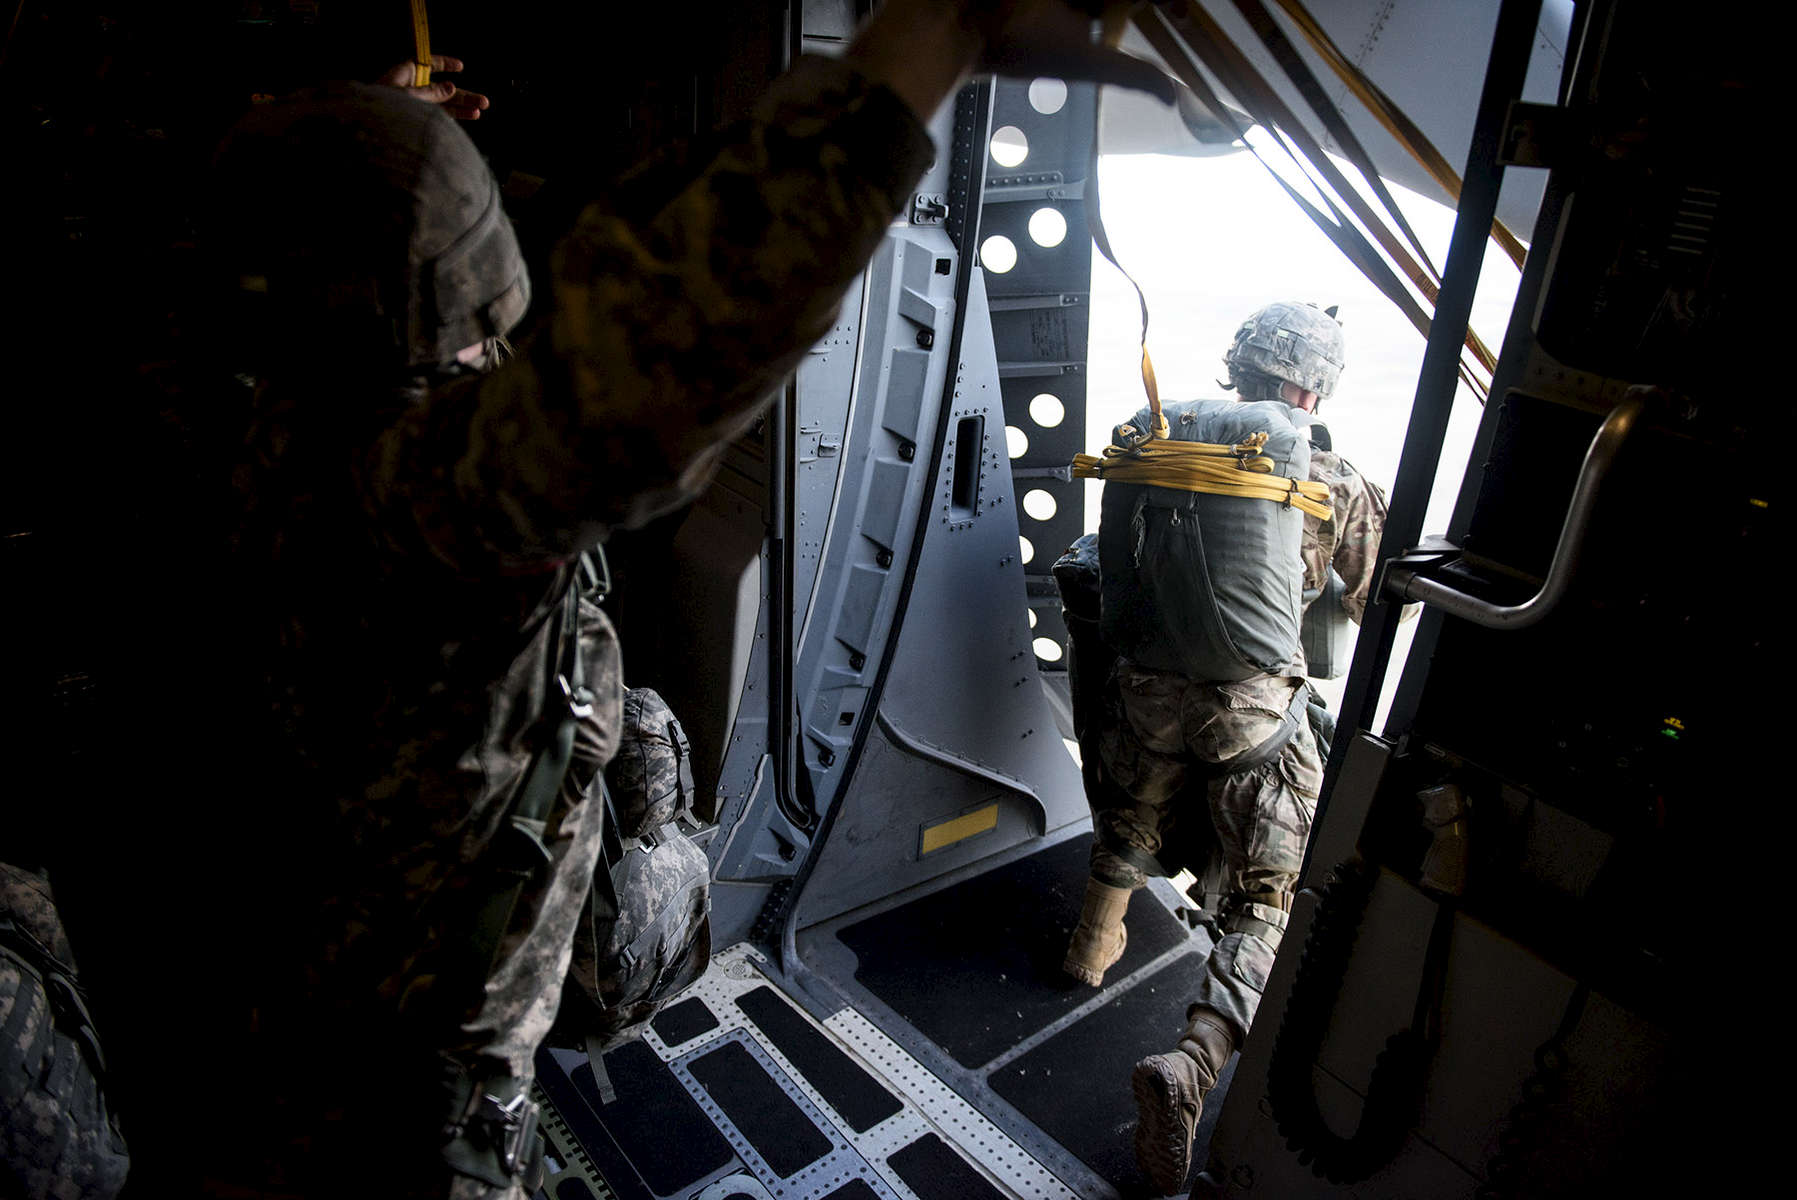 First Place | Multiple PhotosAndrew Craft, The Fayetteville ObserverParatroopers with the 2nd Brigade Combat Team, exits the door on a C-17 as the paratroopers jump into Zaragoza, Spain, Wednesday, Nov. 4, 2015, as part of Operation Trident Juncture 15. In support of Operations Trident Juncture 15 and Ultimate Reach 16, over 500 Paratroopers from the Division's 2nd Brigade Combat Team deployed from Pope Army Airfield, conducted in-flight rigging and executed a Joint Forcible Entry exercise in Zaragoza, Spain.